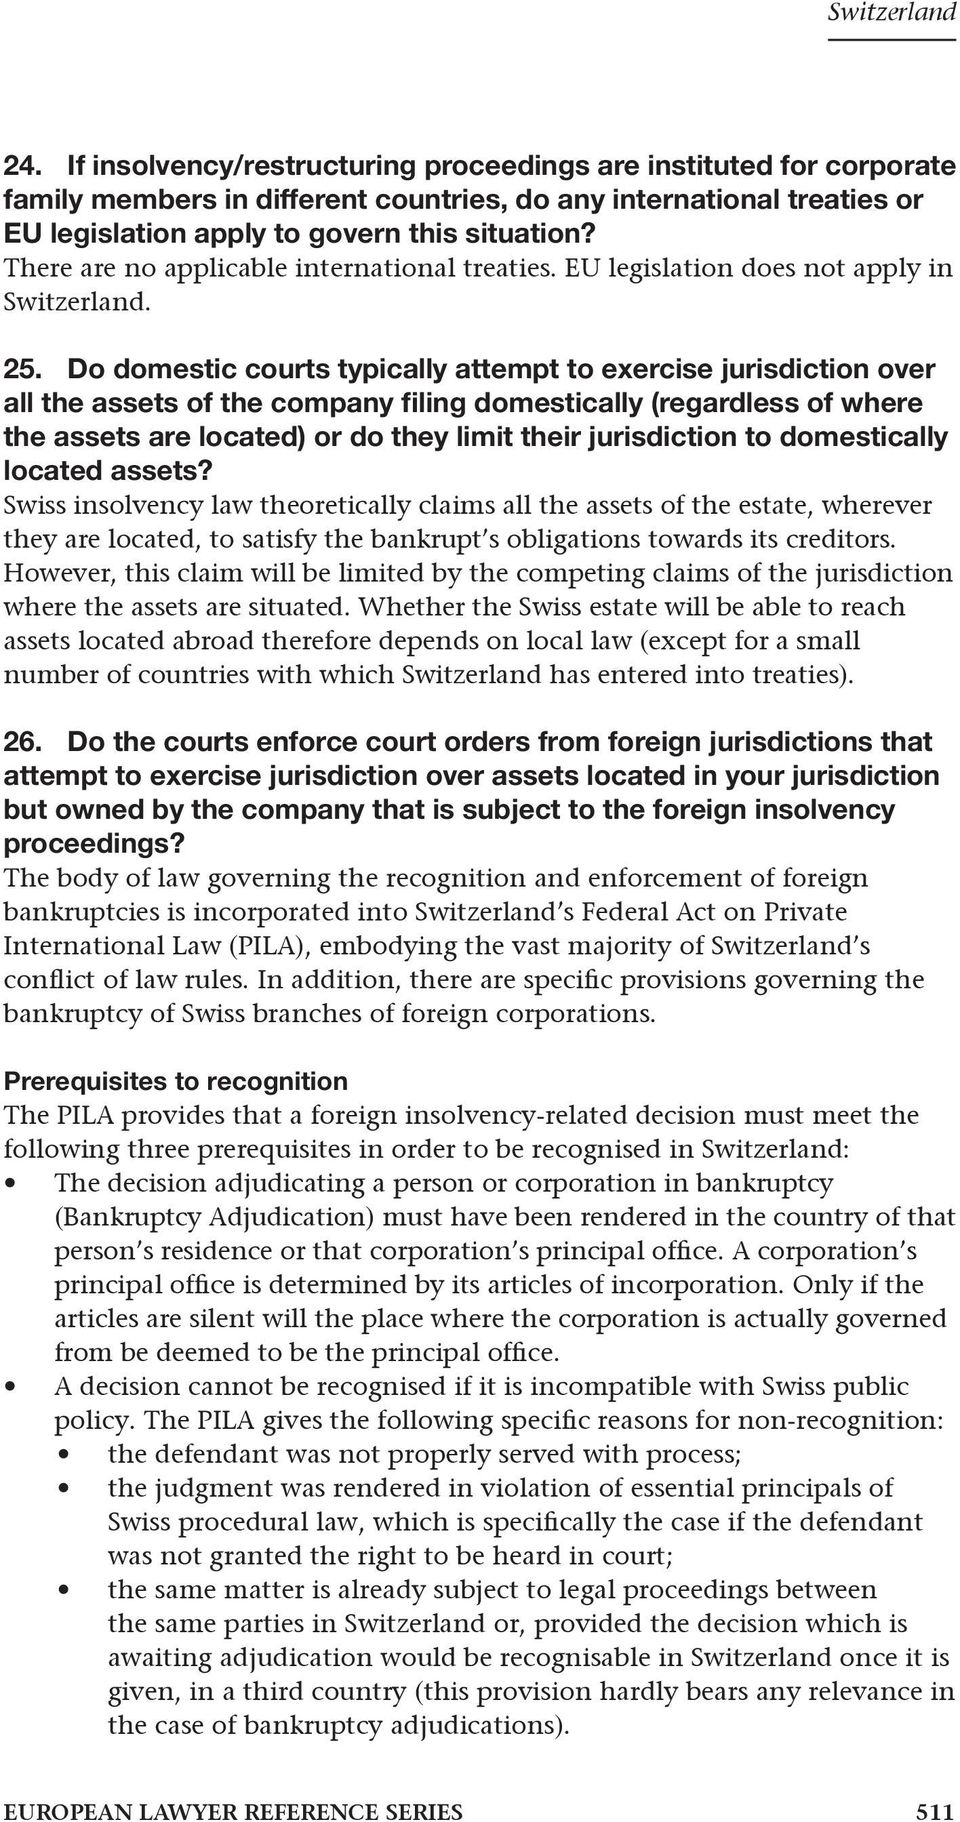 Do domestic courts typically attempt to exercise jurisdiction over all the assets of the company filing domestically (regardless of where the assets are located) or do they limit their jurisdiction